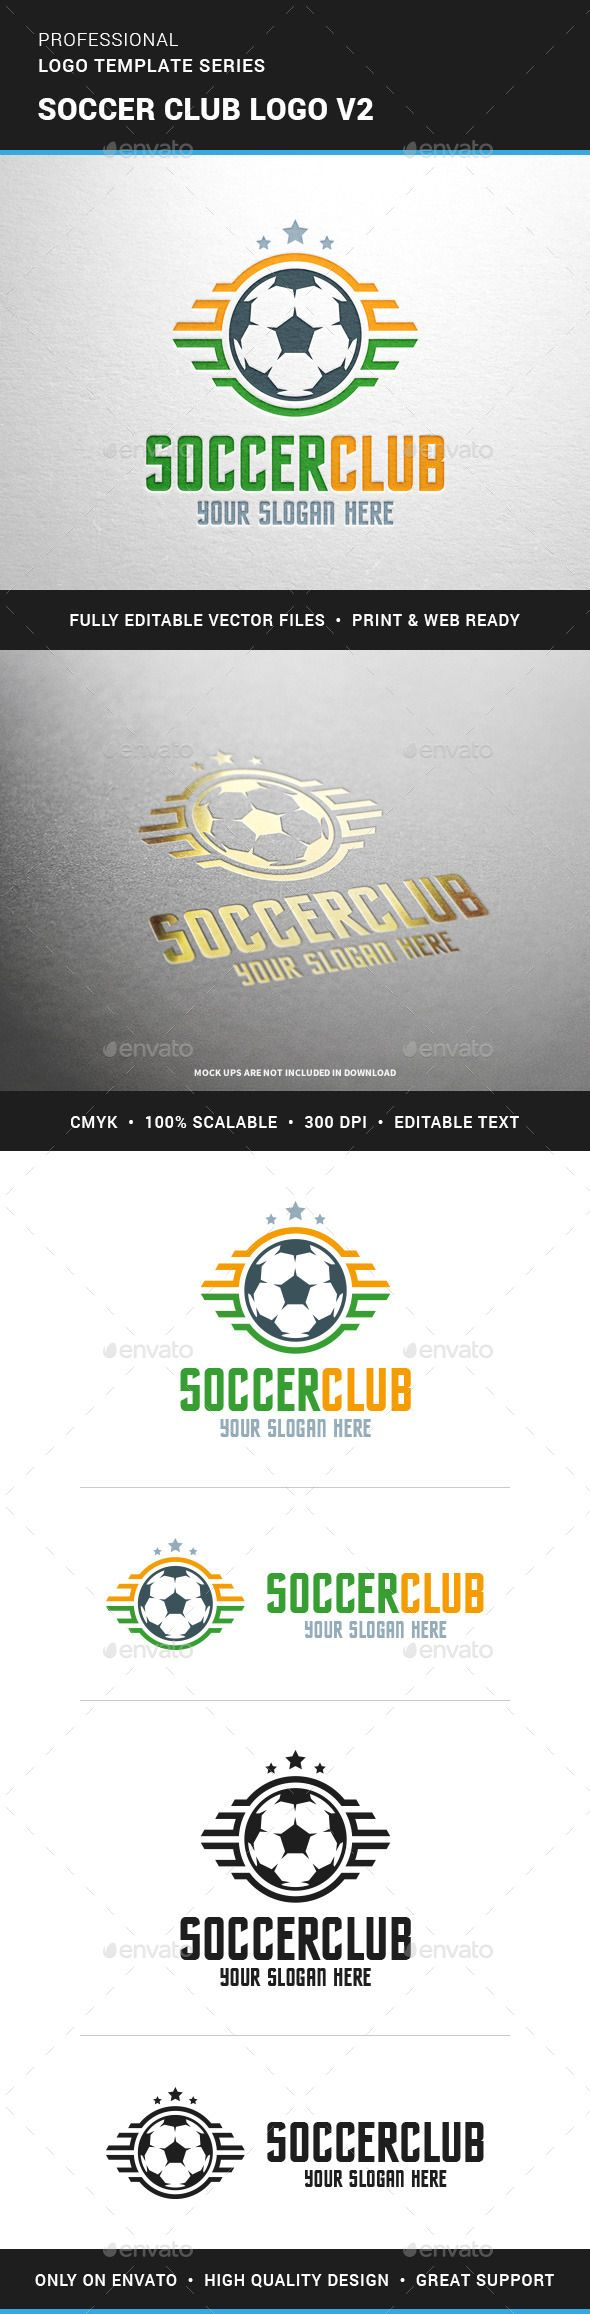 Soccer Club Logo Template v2 — Vector EPS #team #clothing • Available here → https://graphicriver.net/item/soccer-club-logo-template-v2/12112763?ref=pxcr